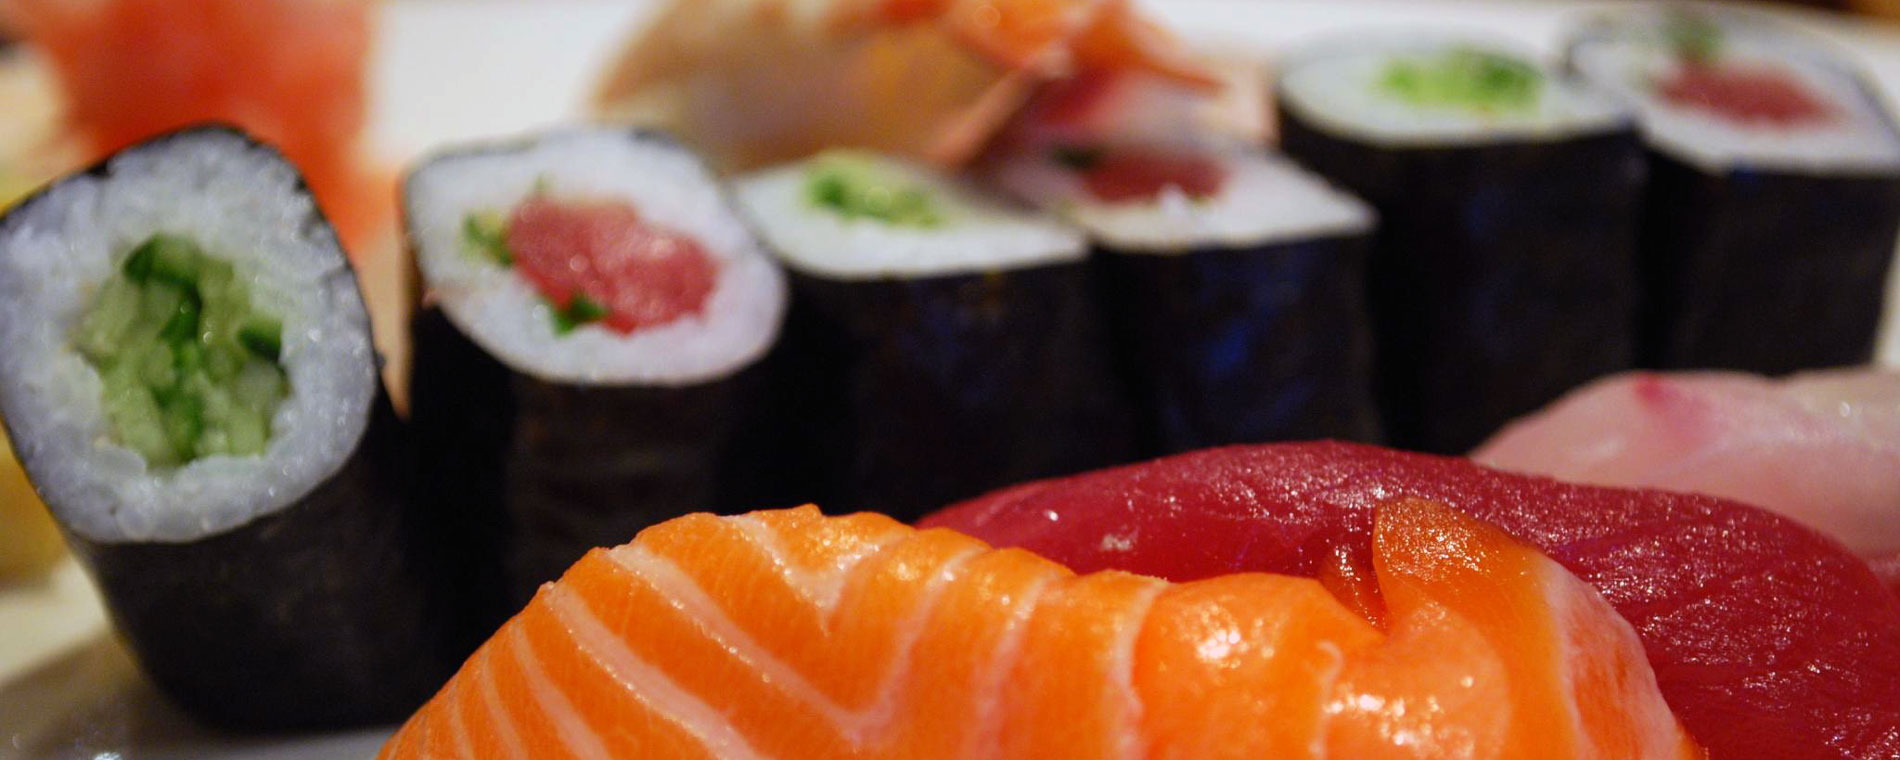 Swag' Bae' And Sushi' Most Popular Dating Profile Buzzwords Of 2015